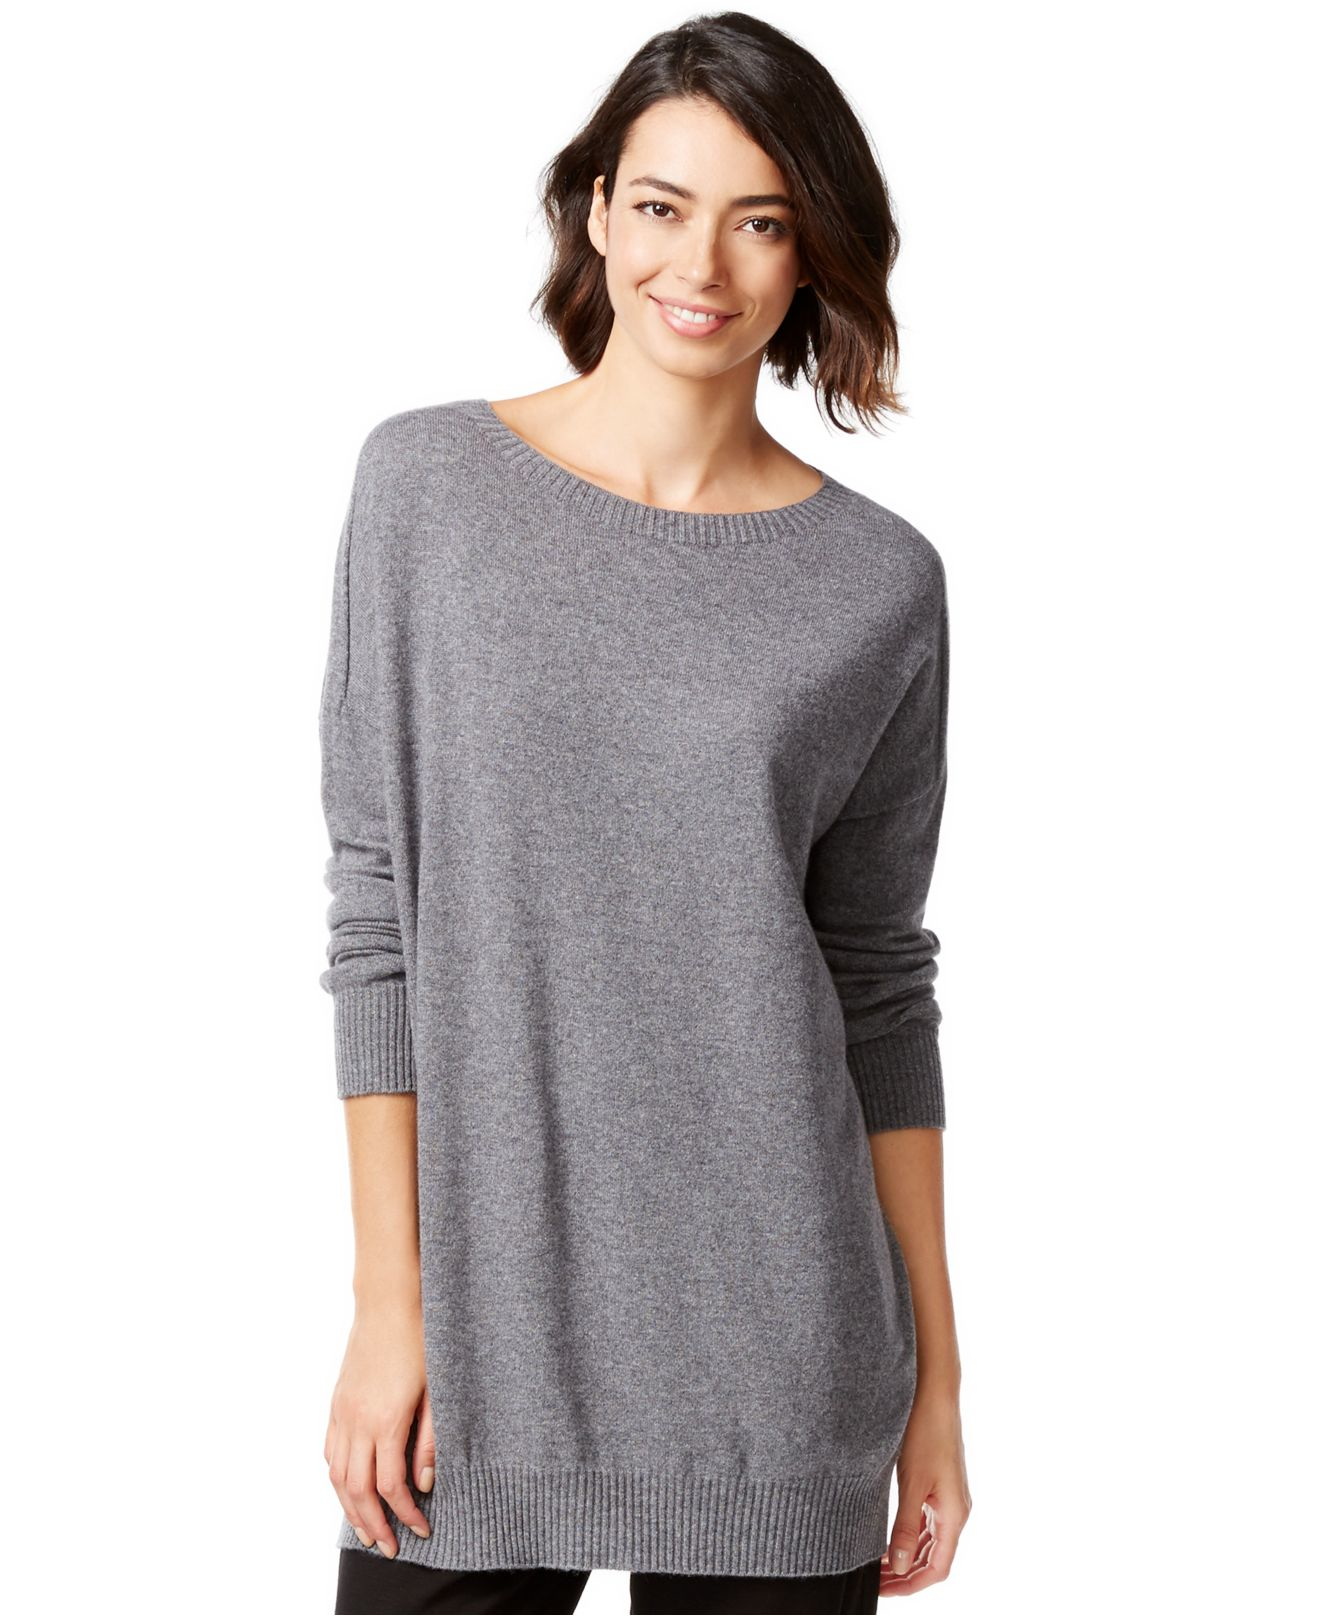 559c1419818b Eileen Fisher Cashmere Relaxed-fit Sweater Tunic in Gray - Lyst